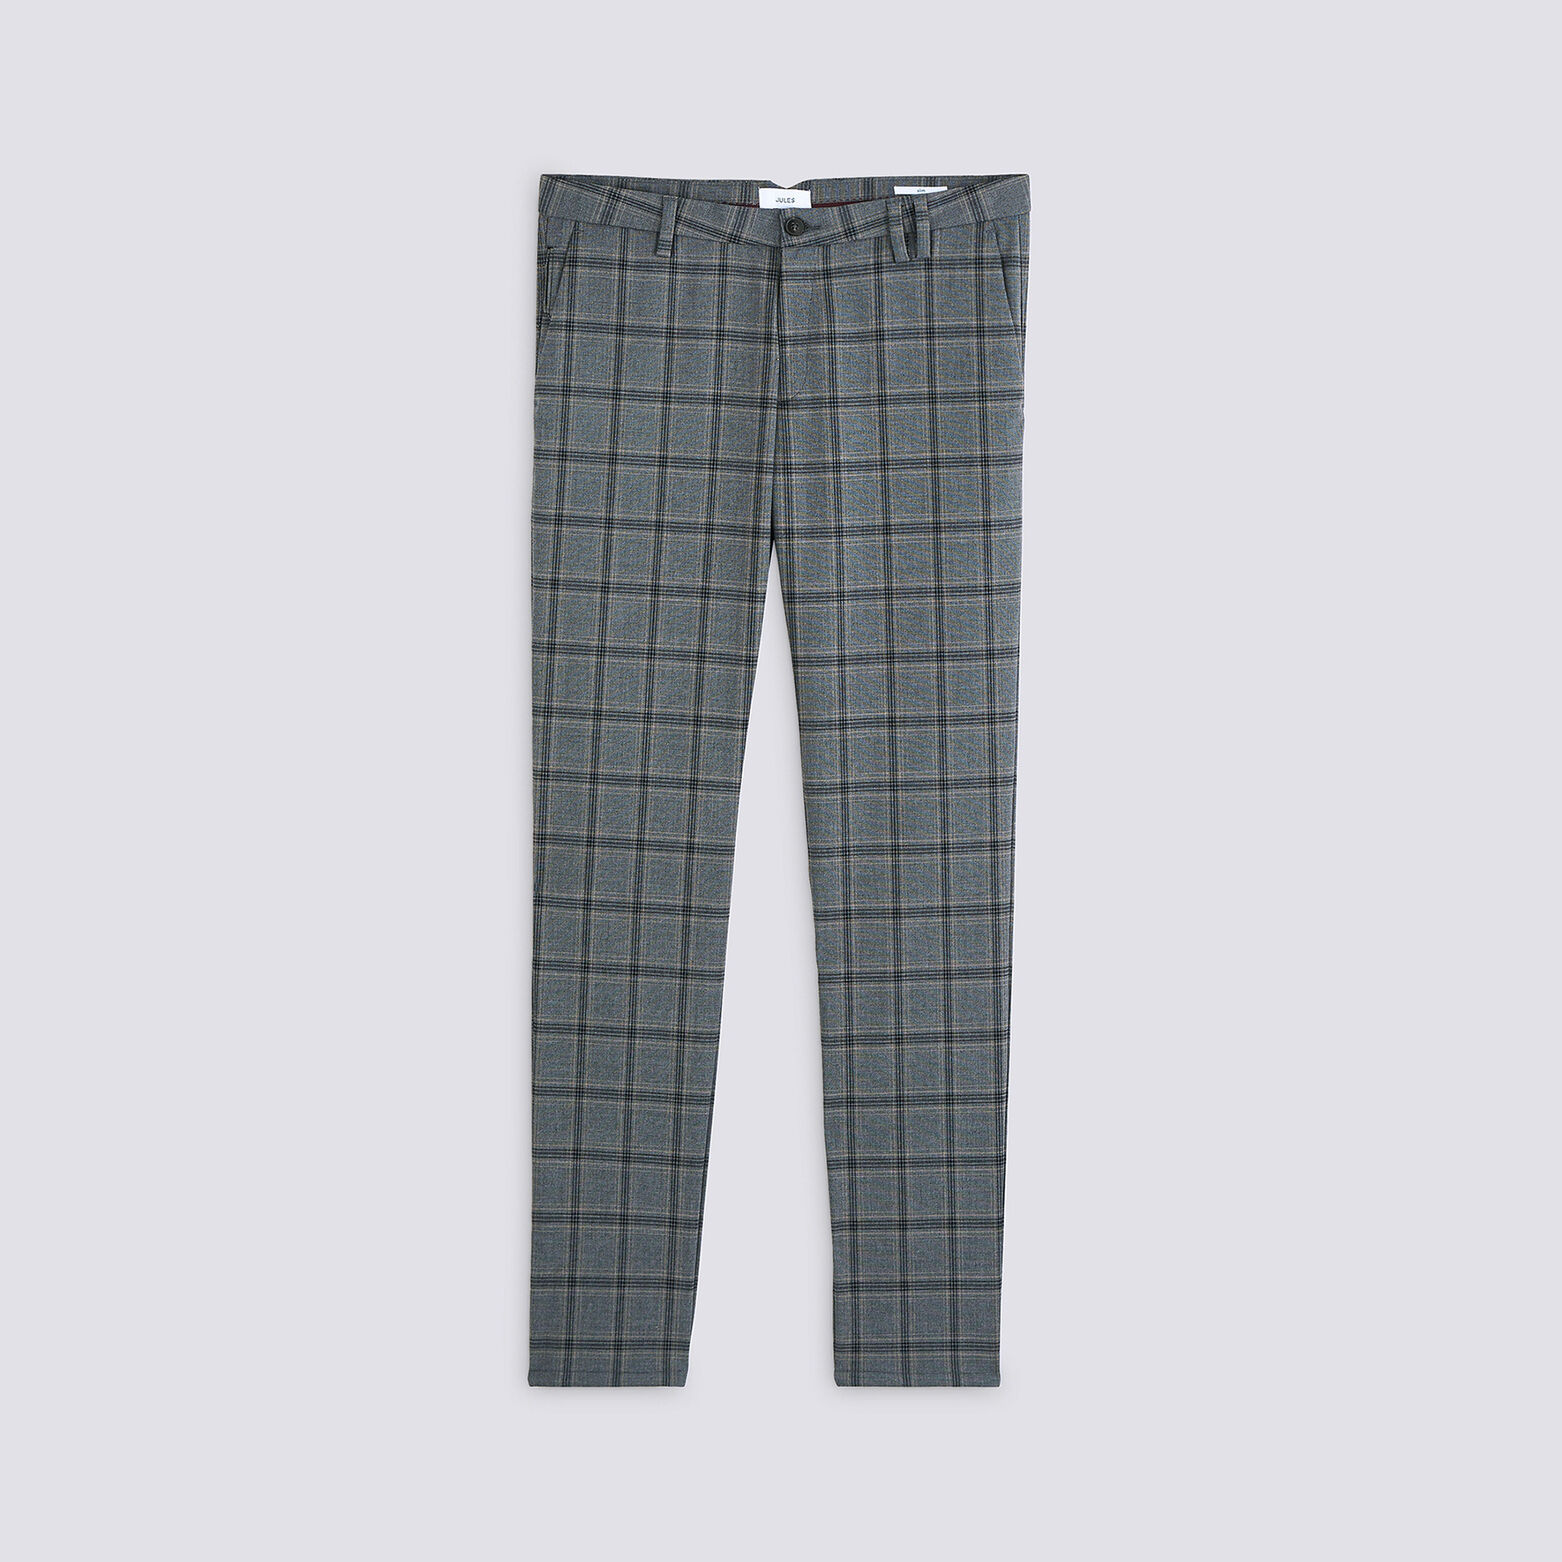 Pantalon chino slim à carreaux